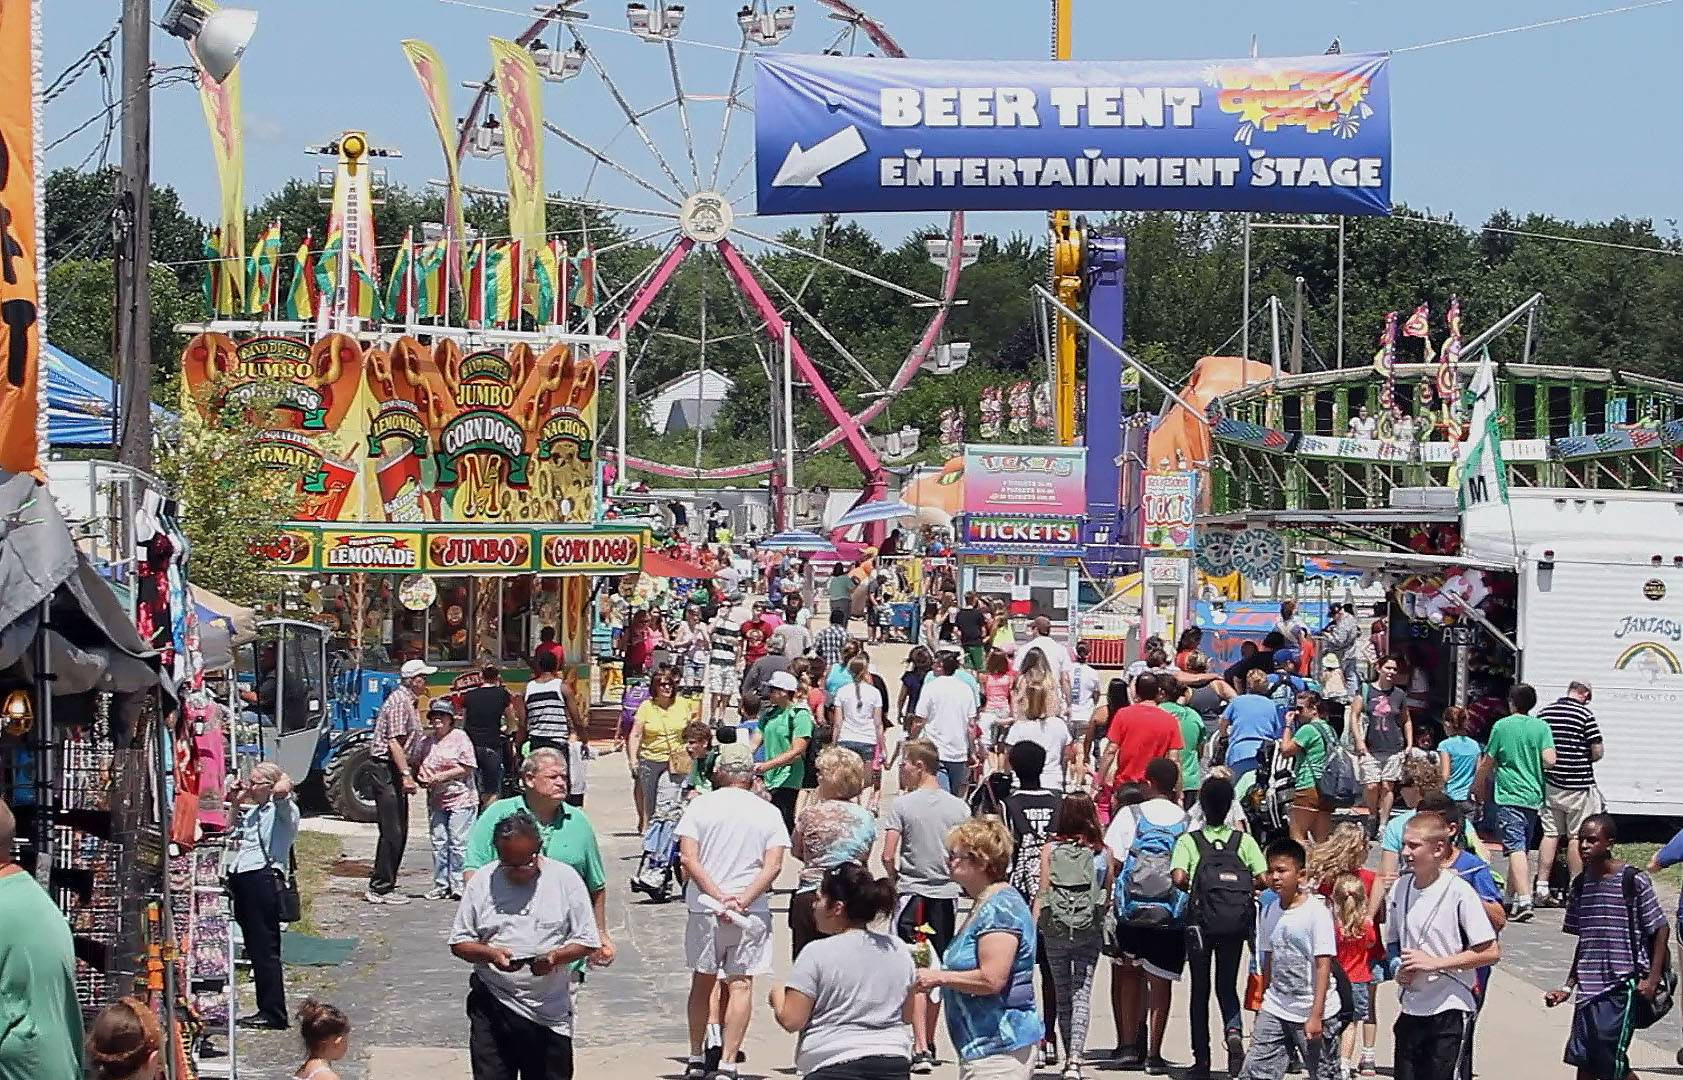 Roughly 100,000 visitors are expected to attend the five-day DuPage County Fair, which opened Wednesday in Wheaton.